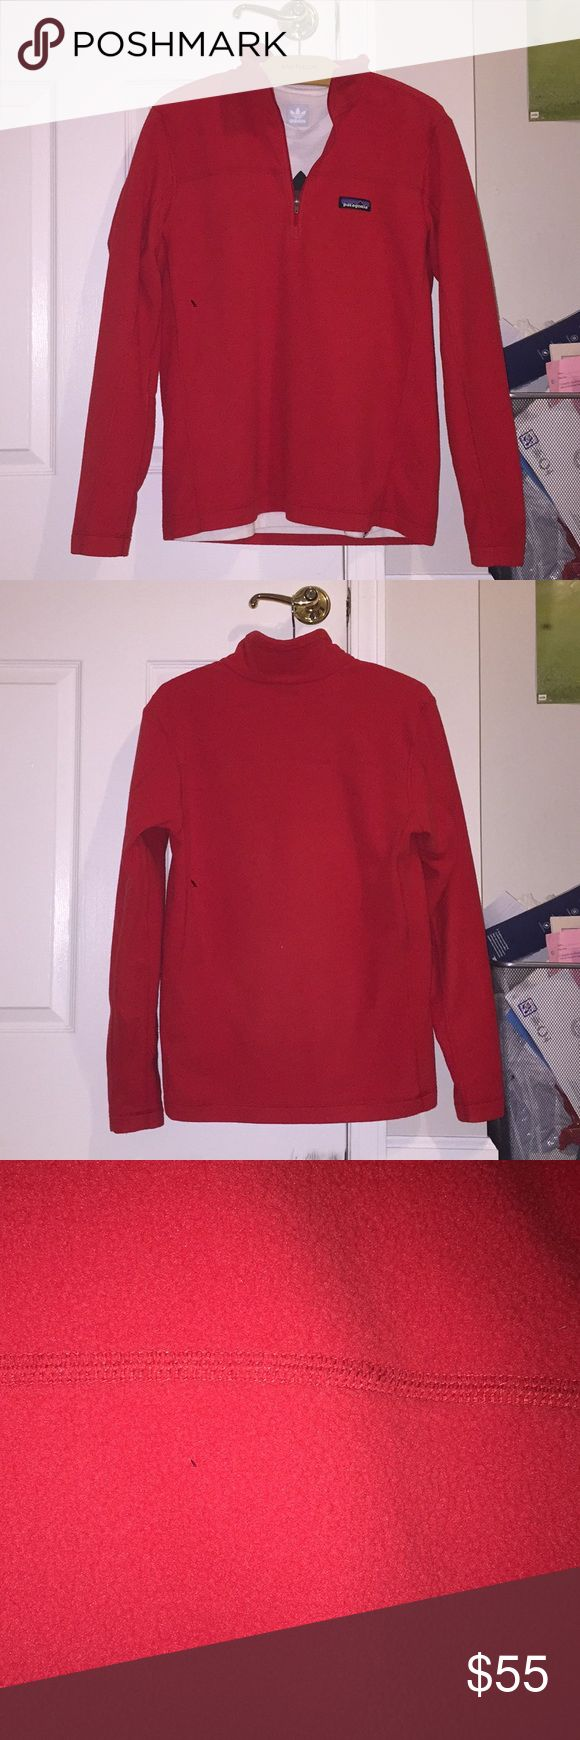 Patagonia 1/4 zip pullover Men's Size small patagonia 1/4 zip pullover, Wore twice very clean 10/10 condition very soft material for sale because it's too small for me Patagonia Sweaters